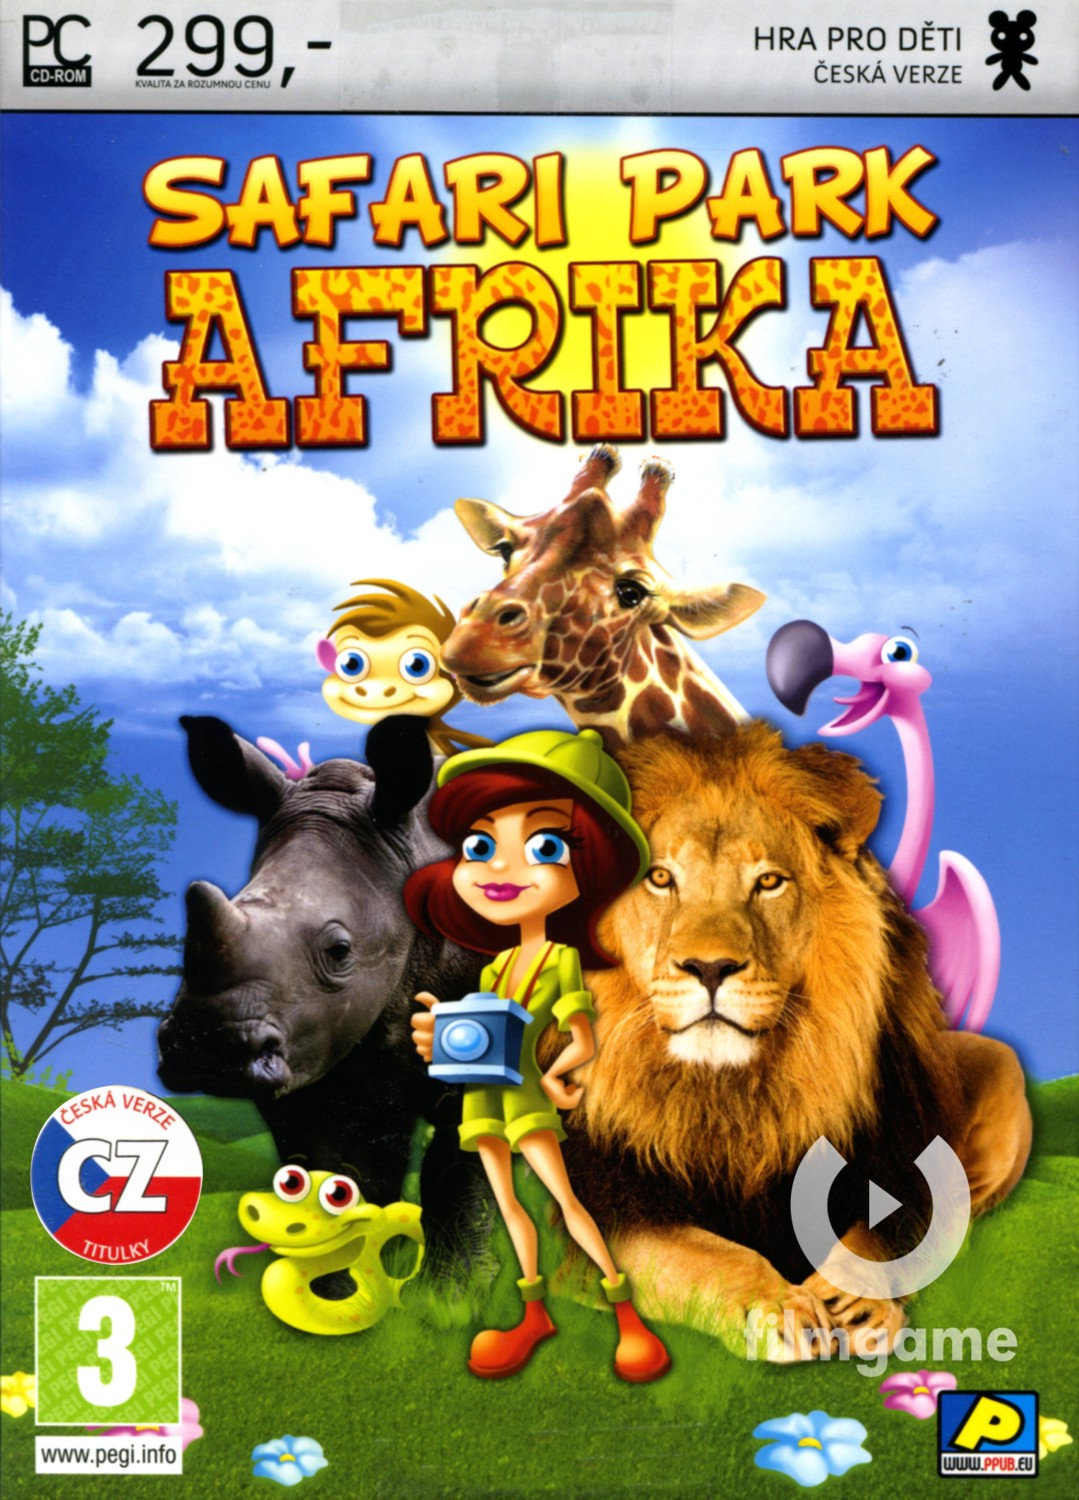 SAFARI PARK AFRIKA - PC